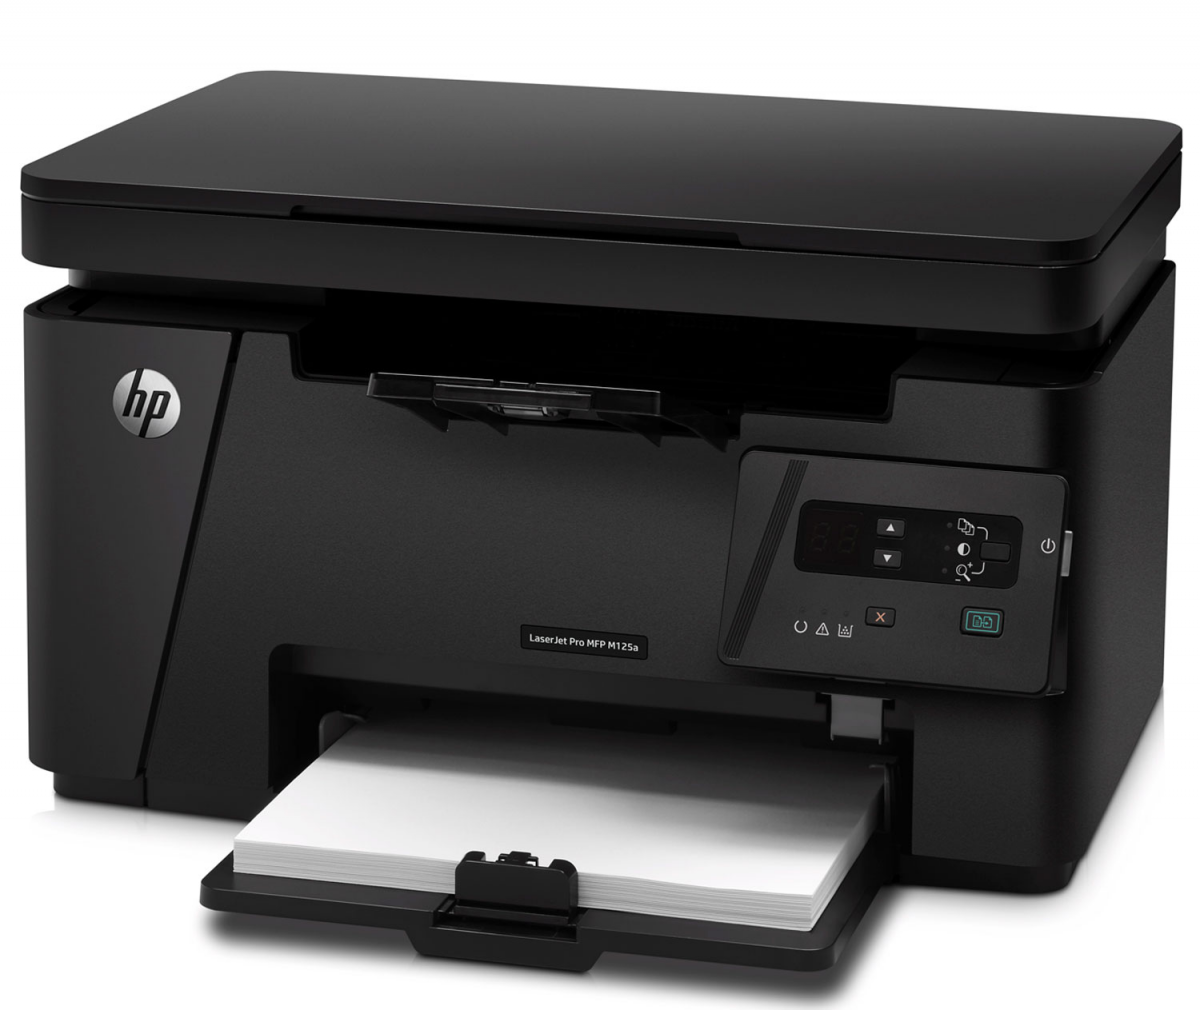 hp mfp m125a une imprimante monochrome pour optimiser ses t ches cartridgeworld magazine. Black Bedroom Furniture Sets. Home Design Ideas